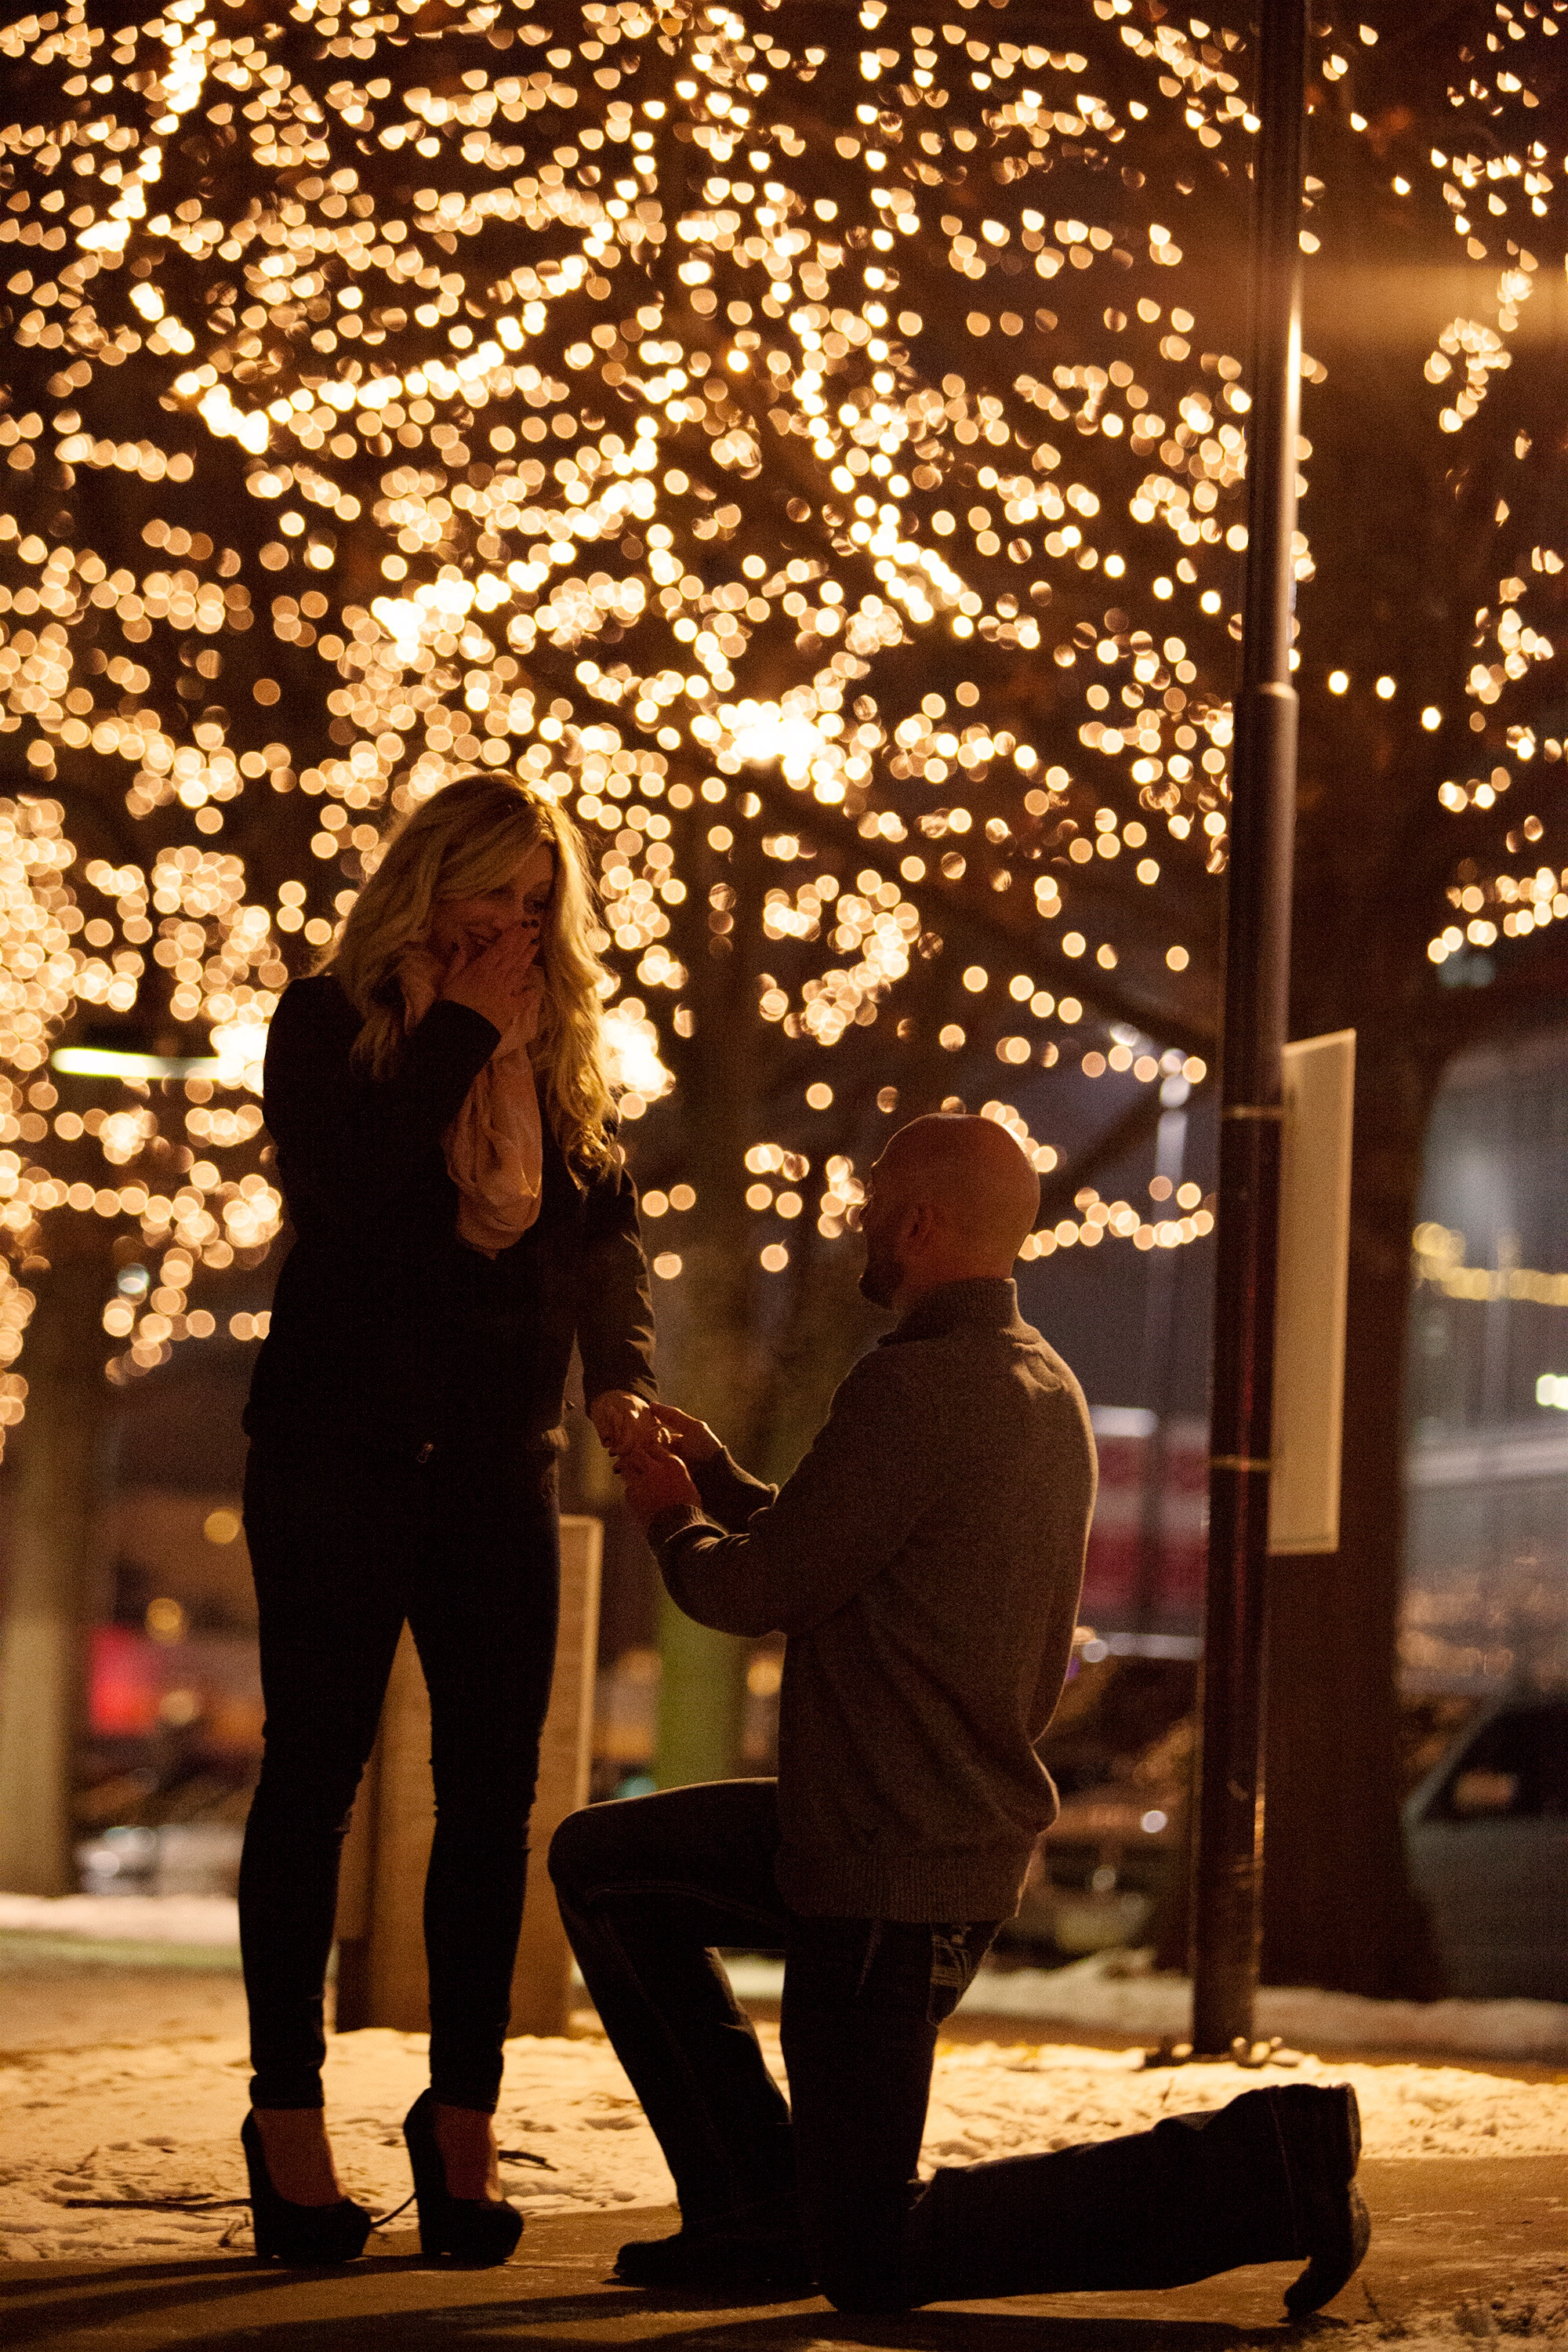 Christmas Tree Proposal -  Flickr Creative Commons